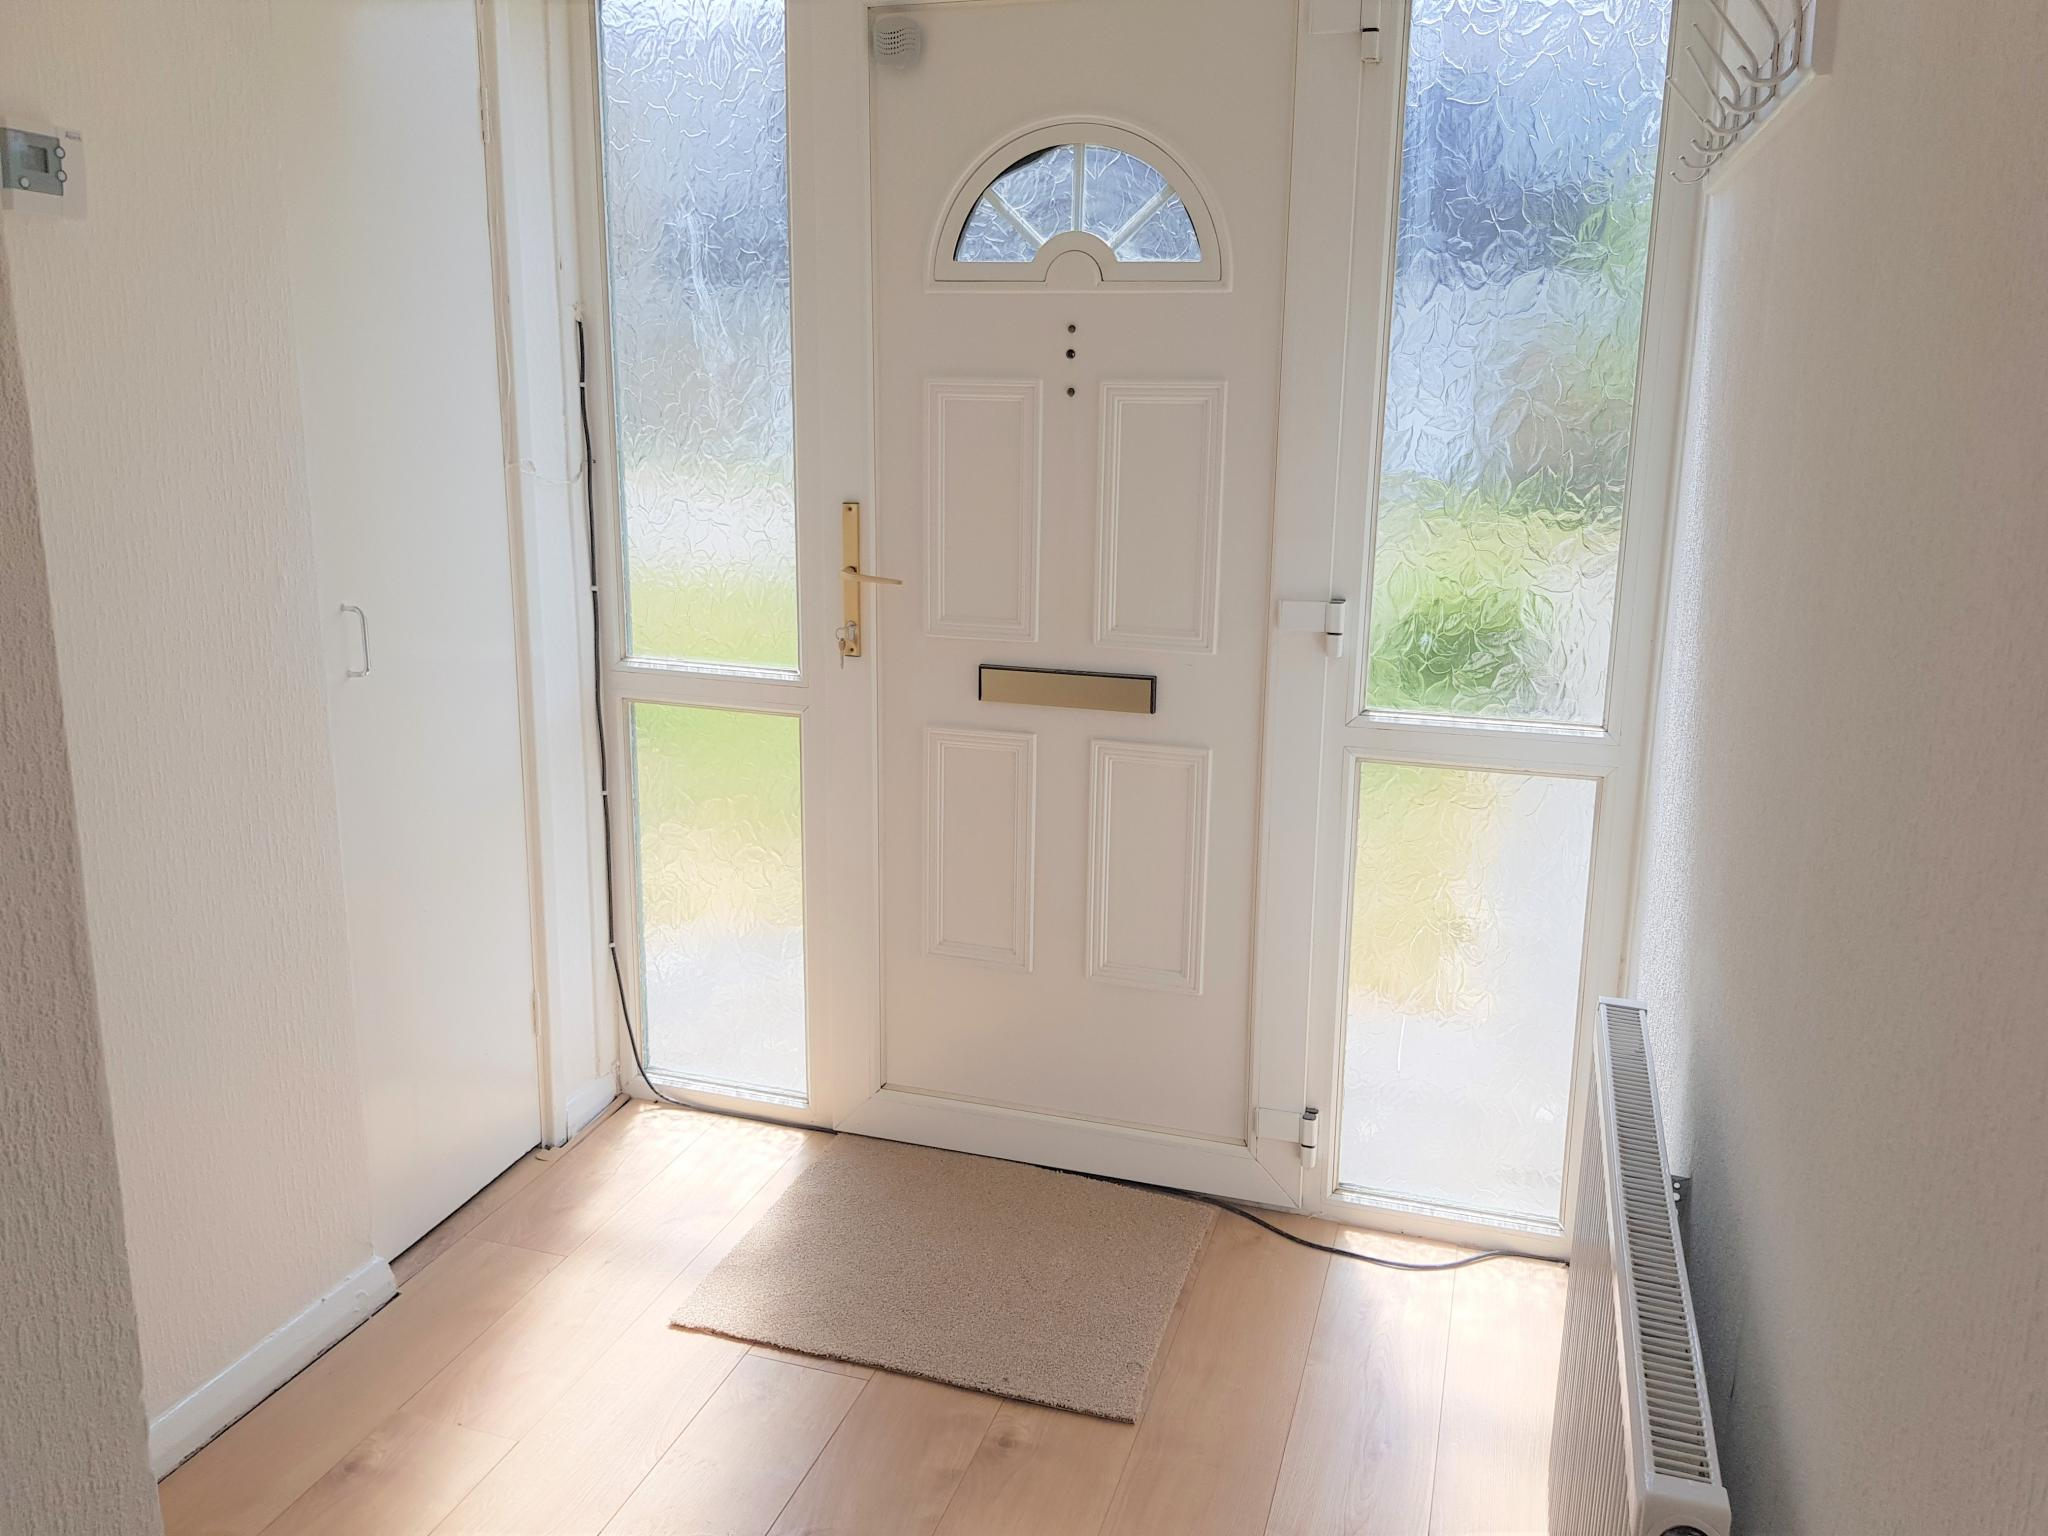 3 Bed Semi-detached House To Rent - Inner Hall Way